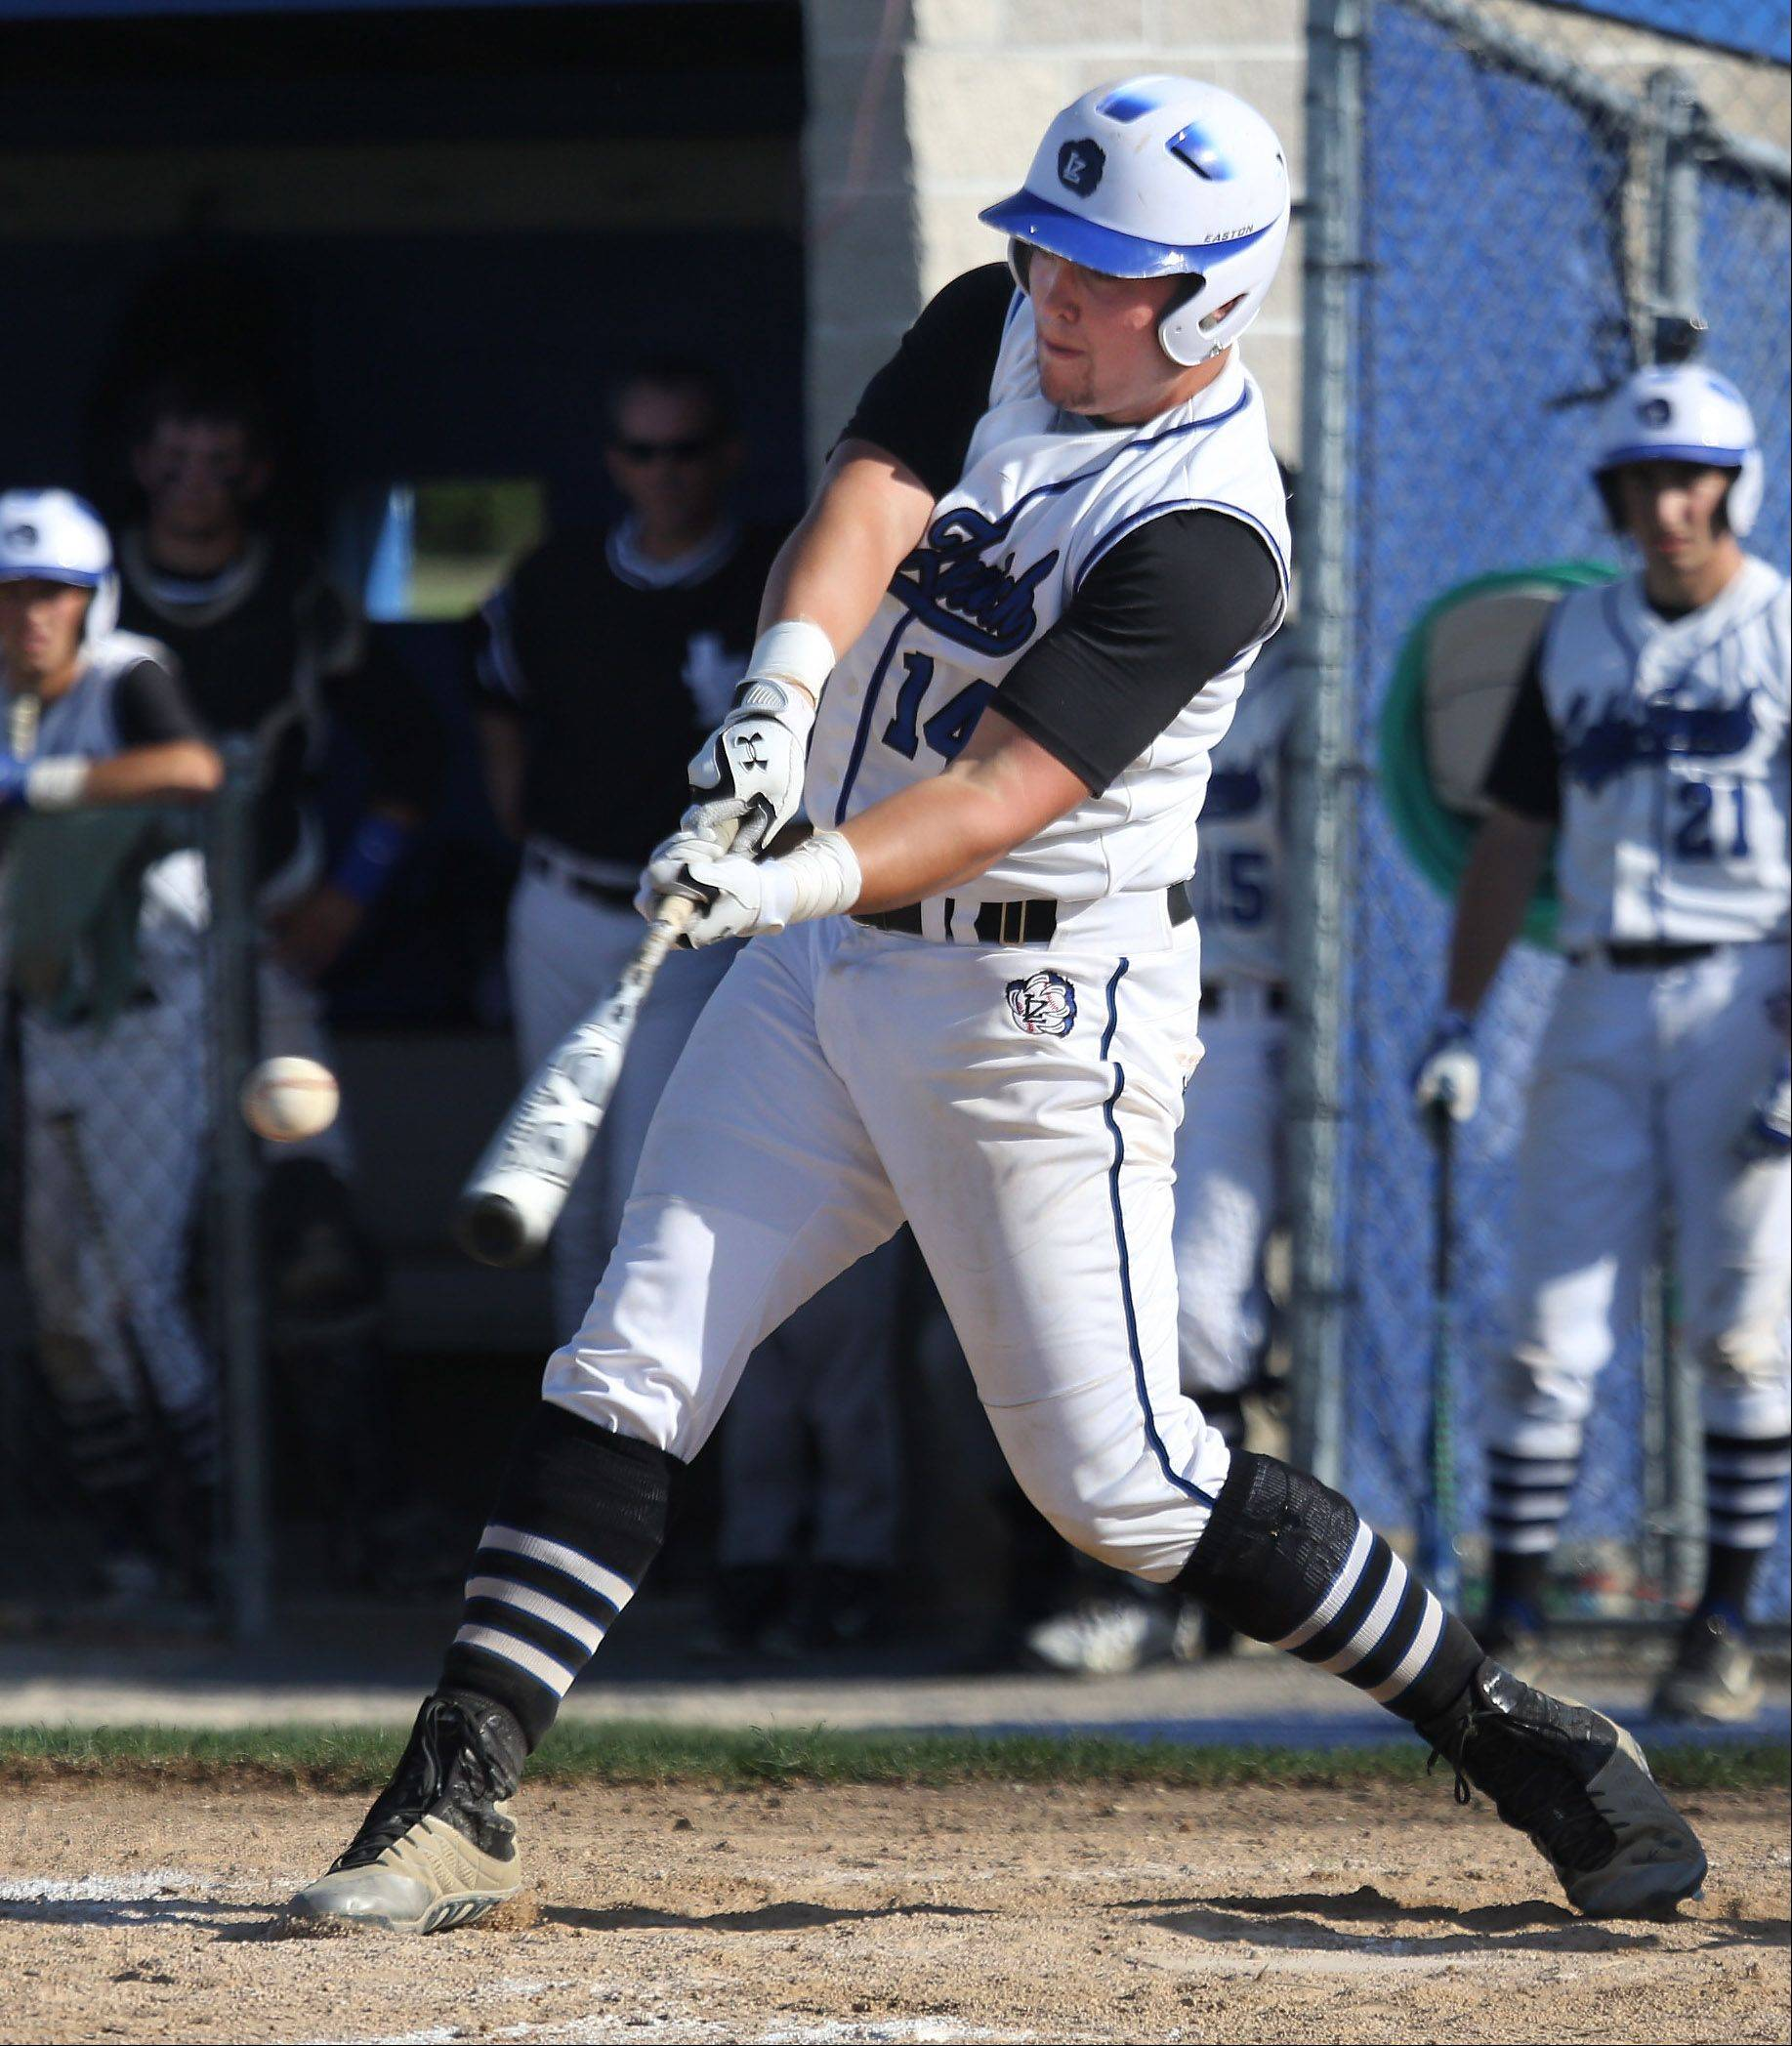 Lake Zurich hitter Tanner Kizer delivers a 2-run triple in the second inning against visiting Prospect in Class 4A regional play Monday.